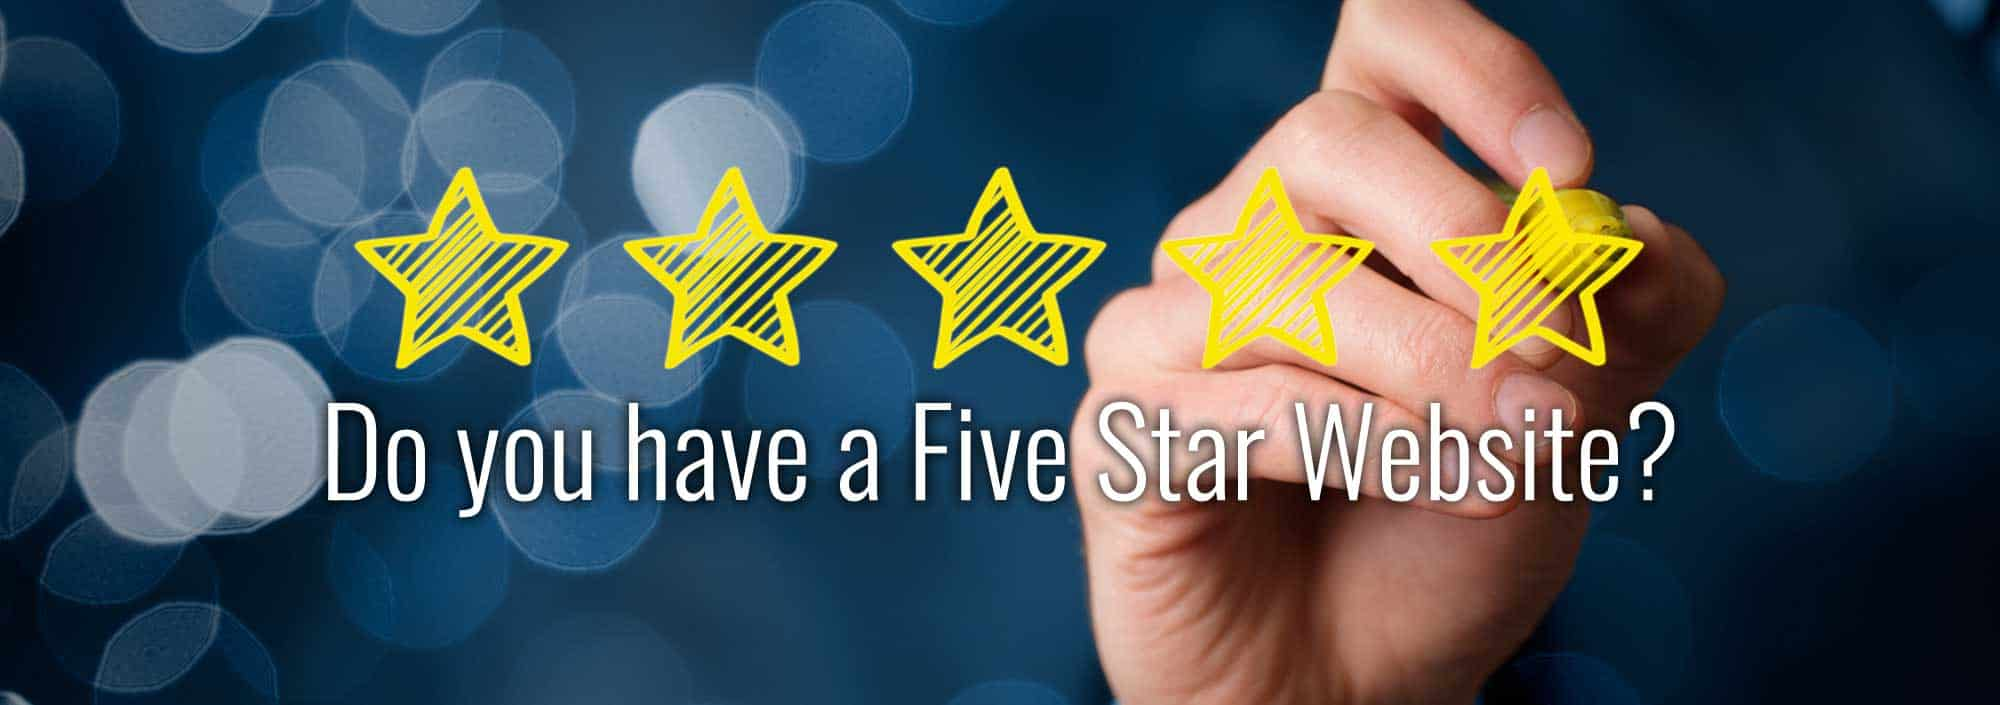 5 star dental website